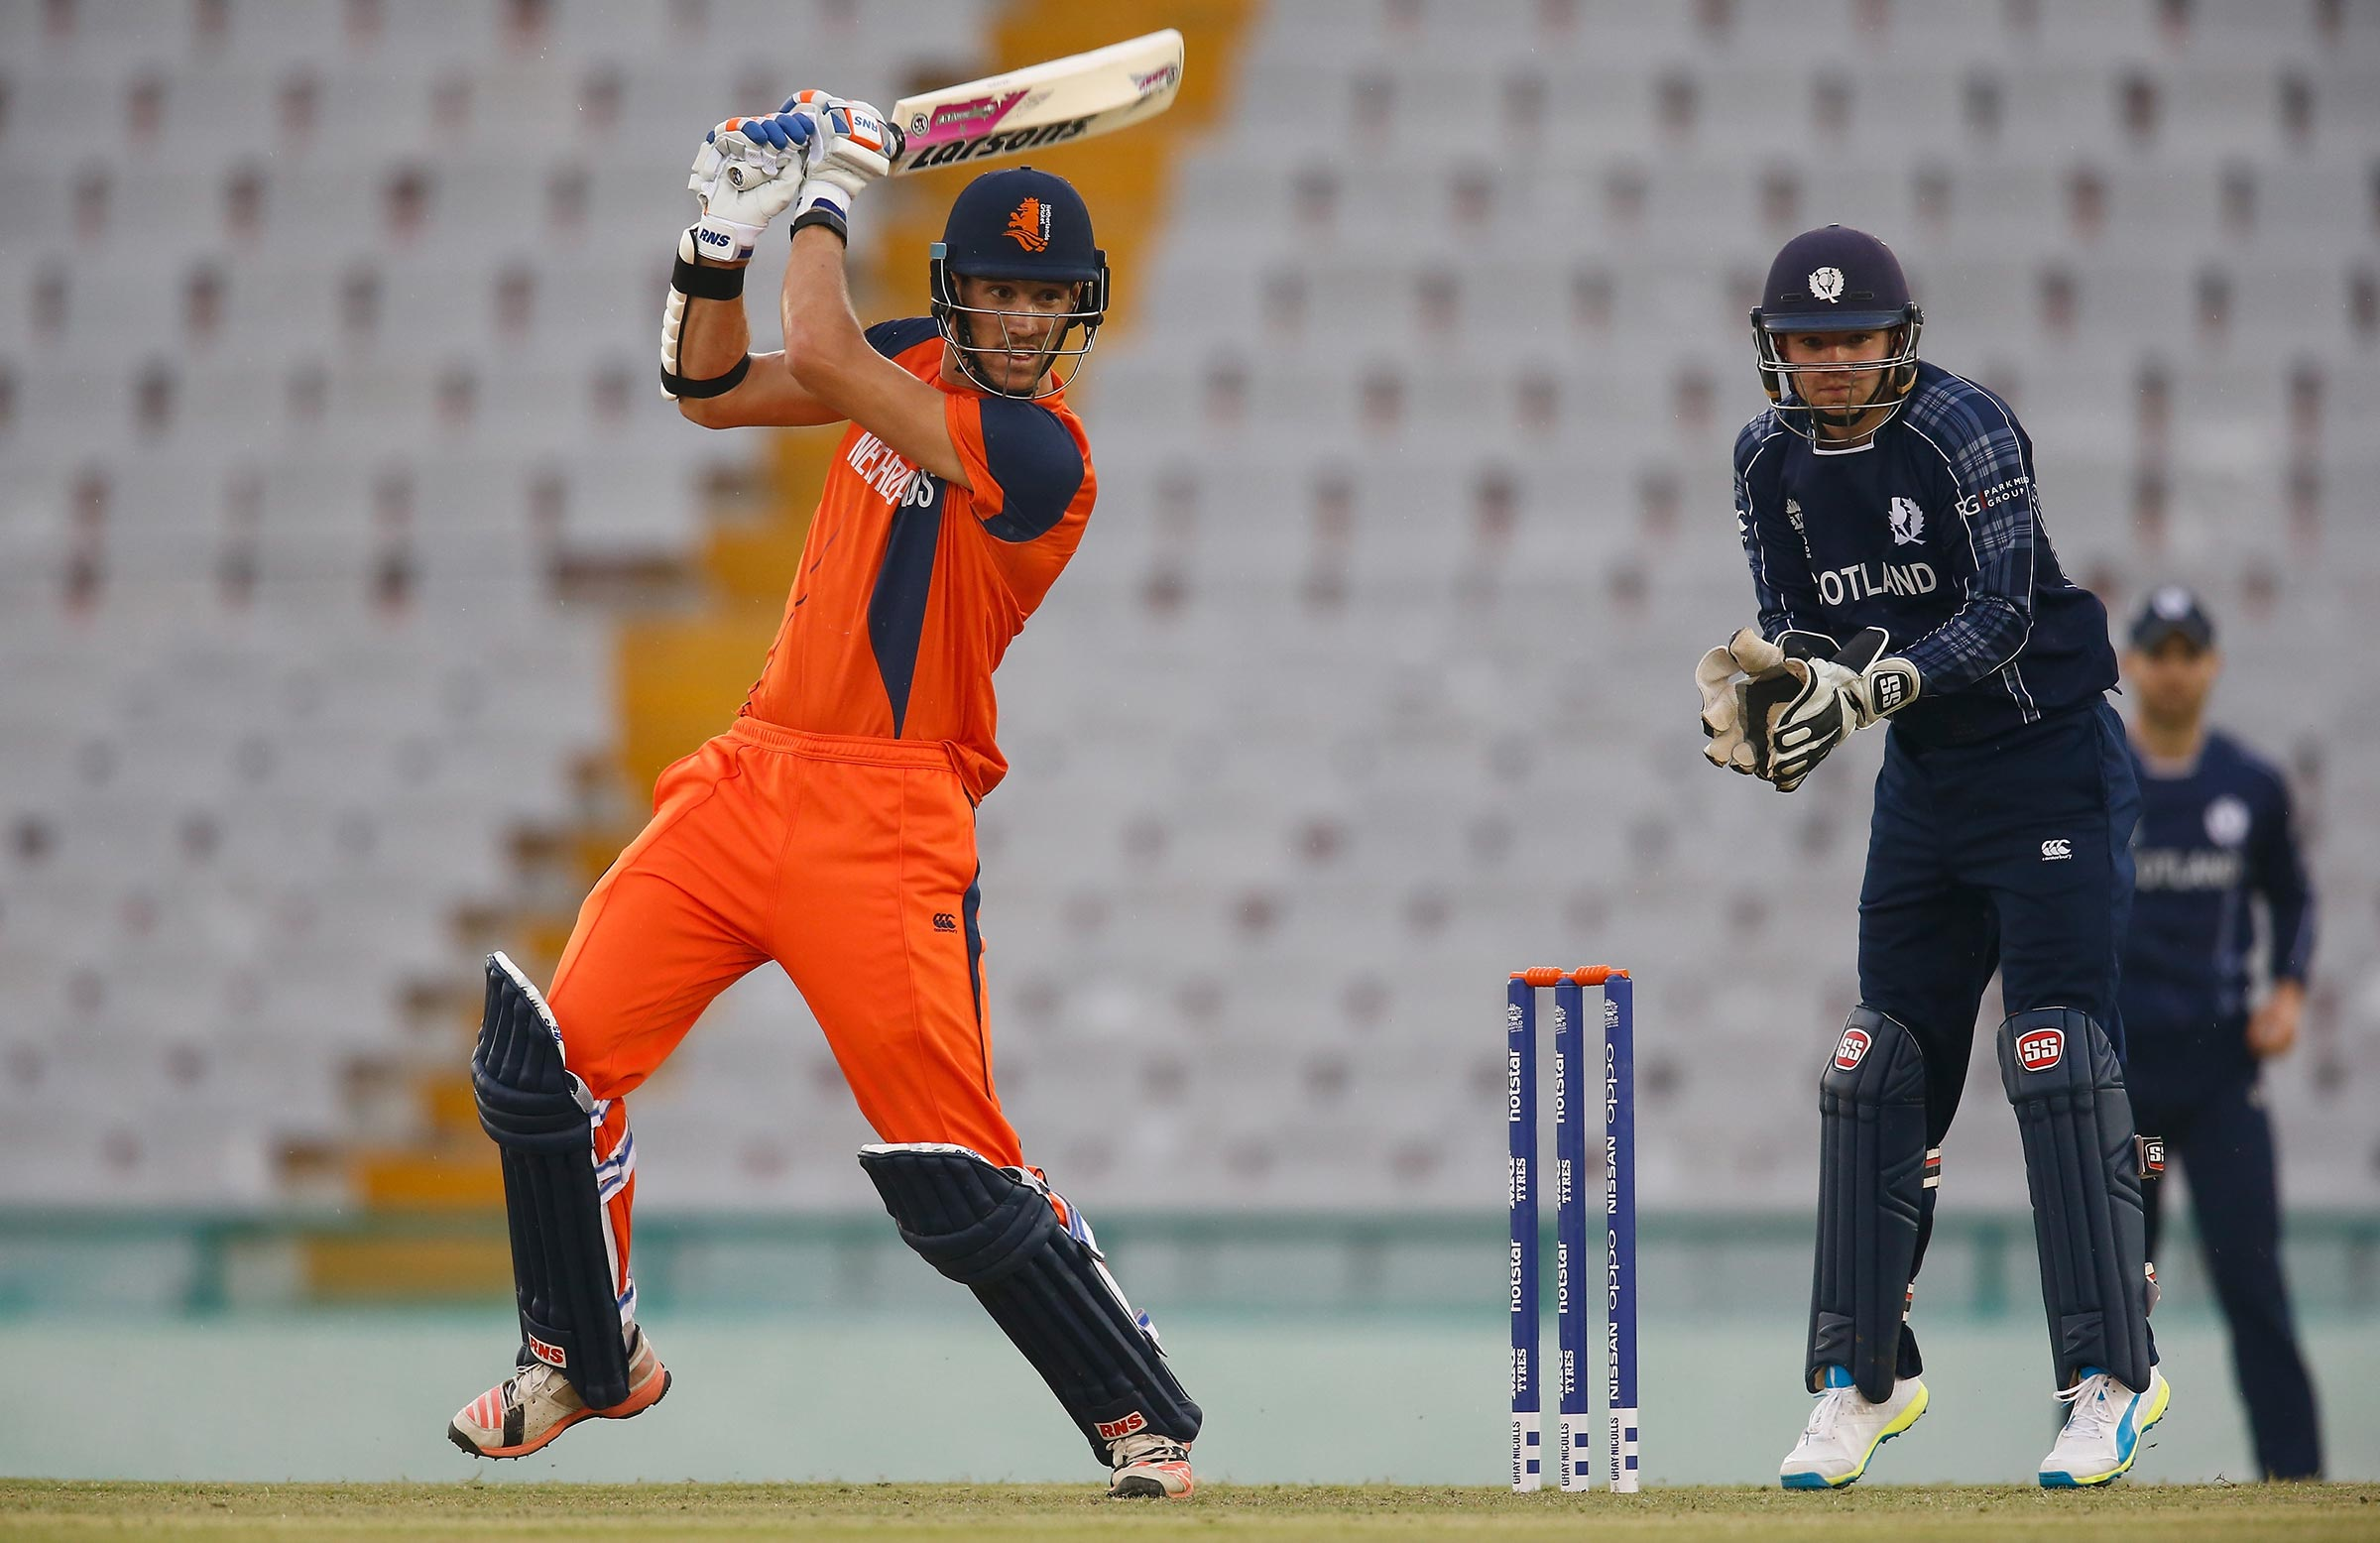 Cooper playing against Scotland at the T20 World Cup // Getty